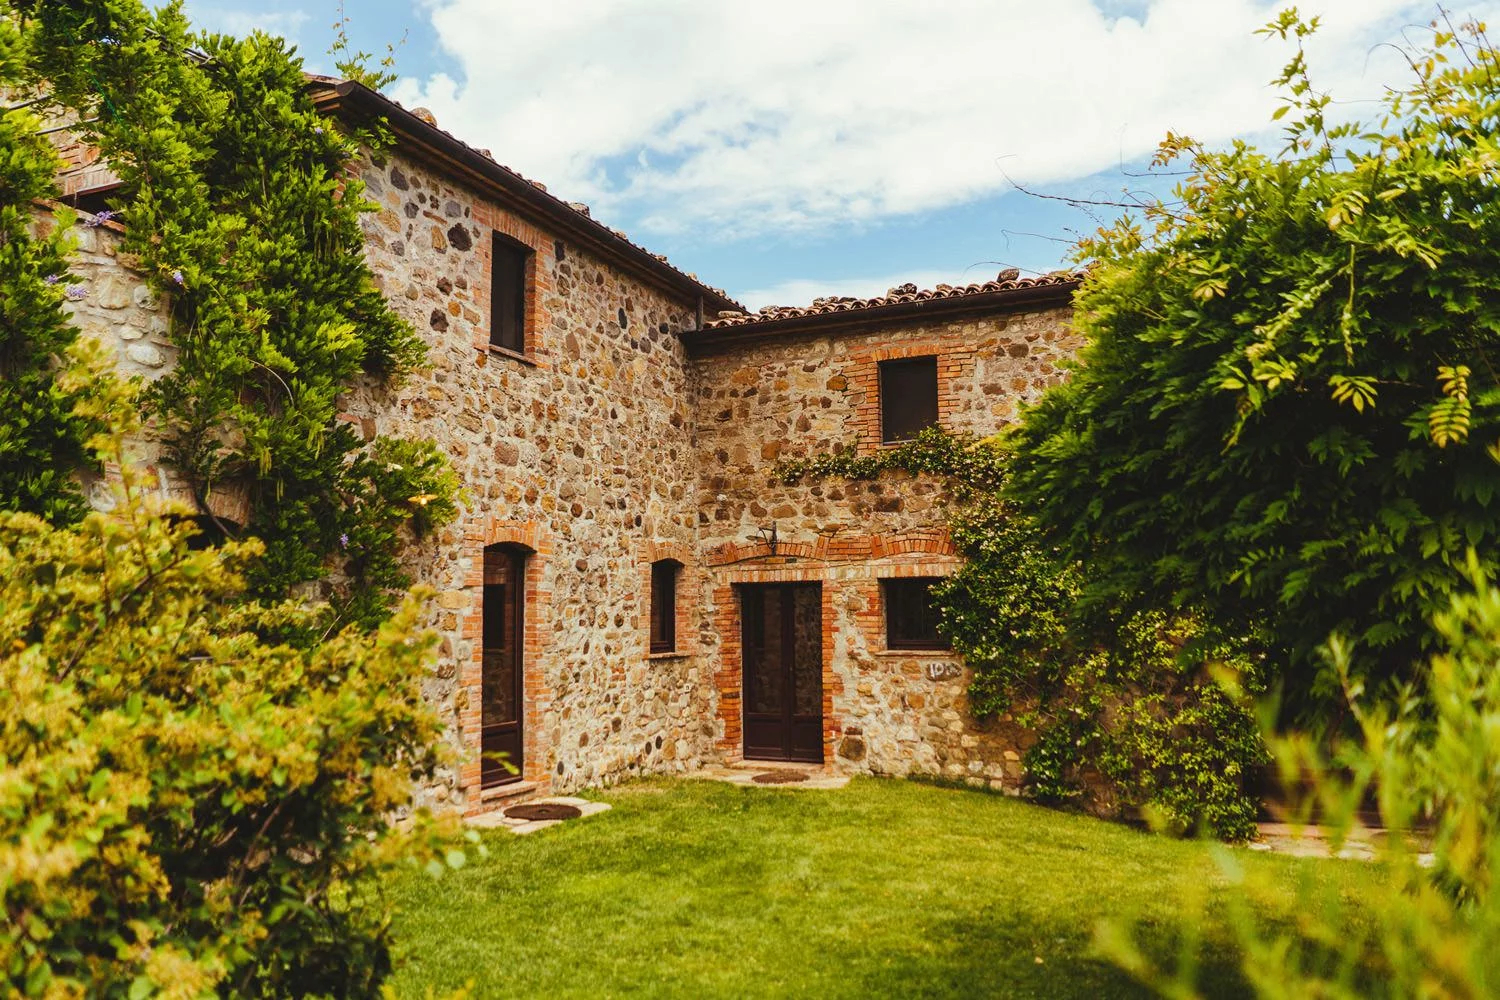 Borgo Di Castelvecchio in Tuscany, Italy, a popular wedding venue in Europe.